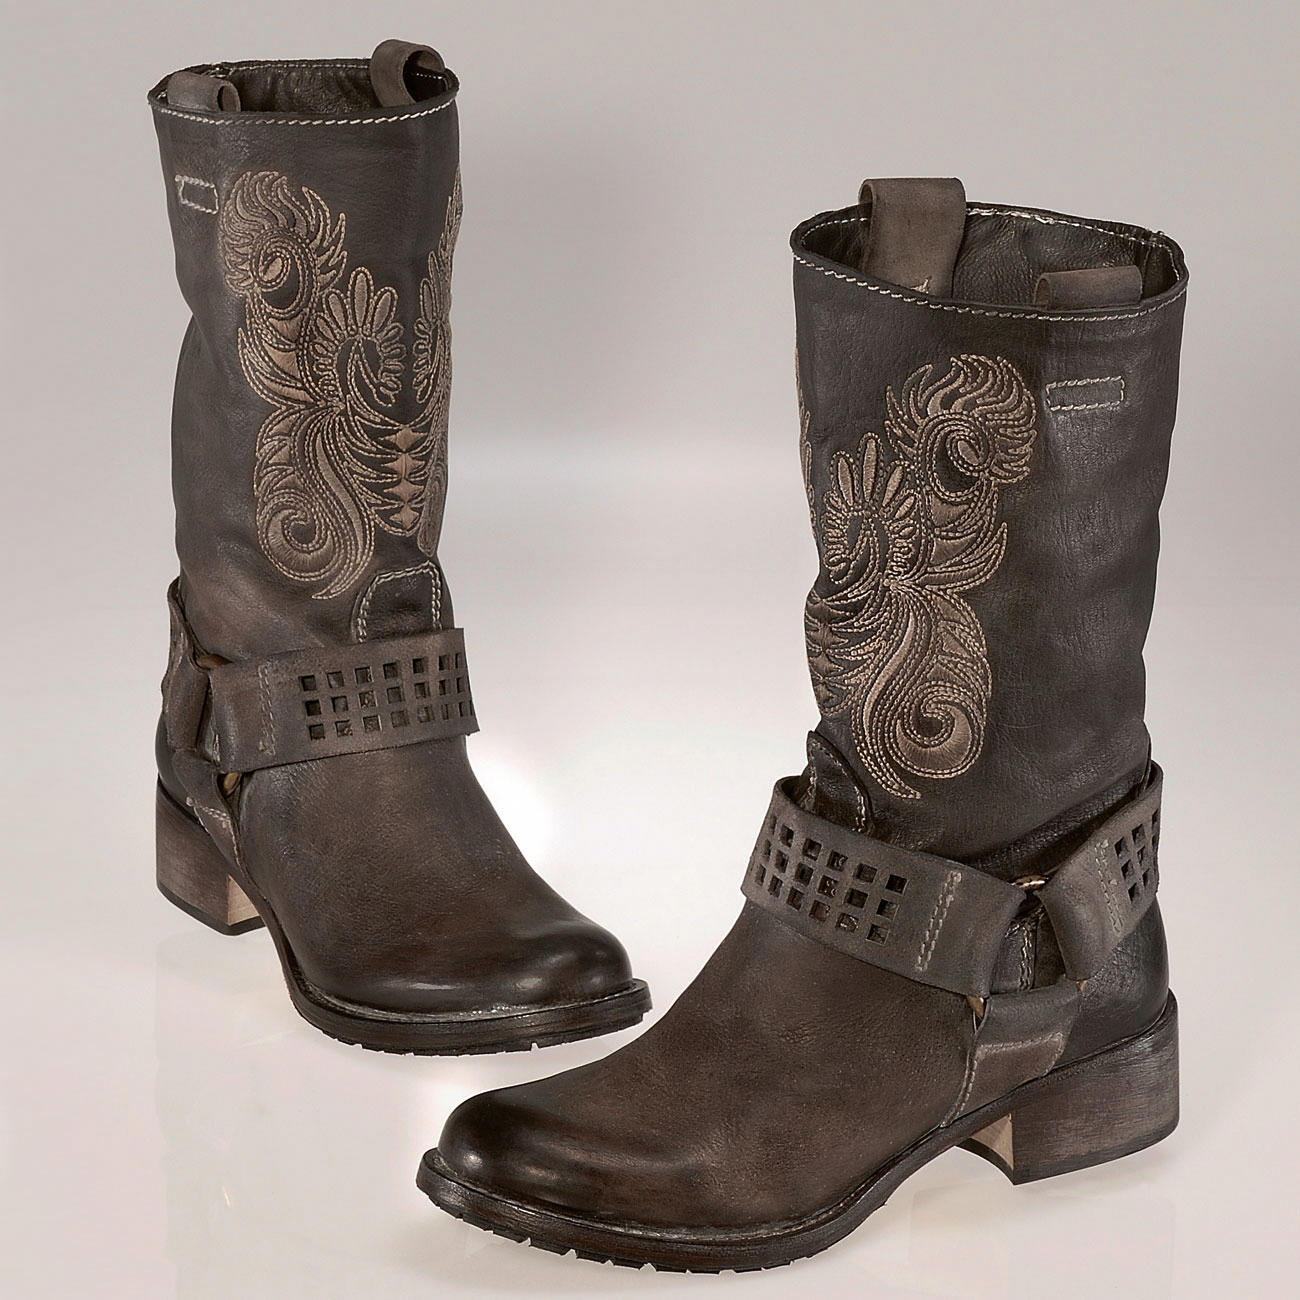 Luxury &quotTougher&quot Styles Like Motorcycle  Womens 5050 OvertheKnee Boot,Black Nappa,65 M US So Heres The Deal With Wellies These Boots Arent Supposed To Be Fitted Theyre Supposed To Flap Around On Your Legs  Thats The Style, And